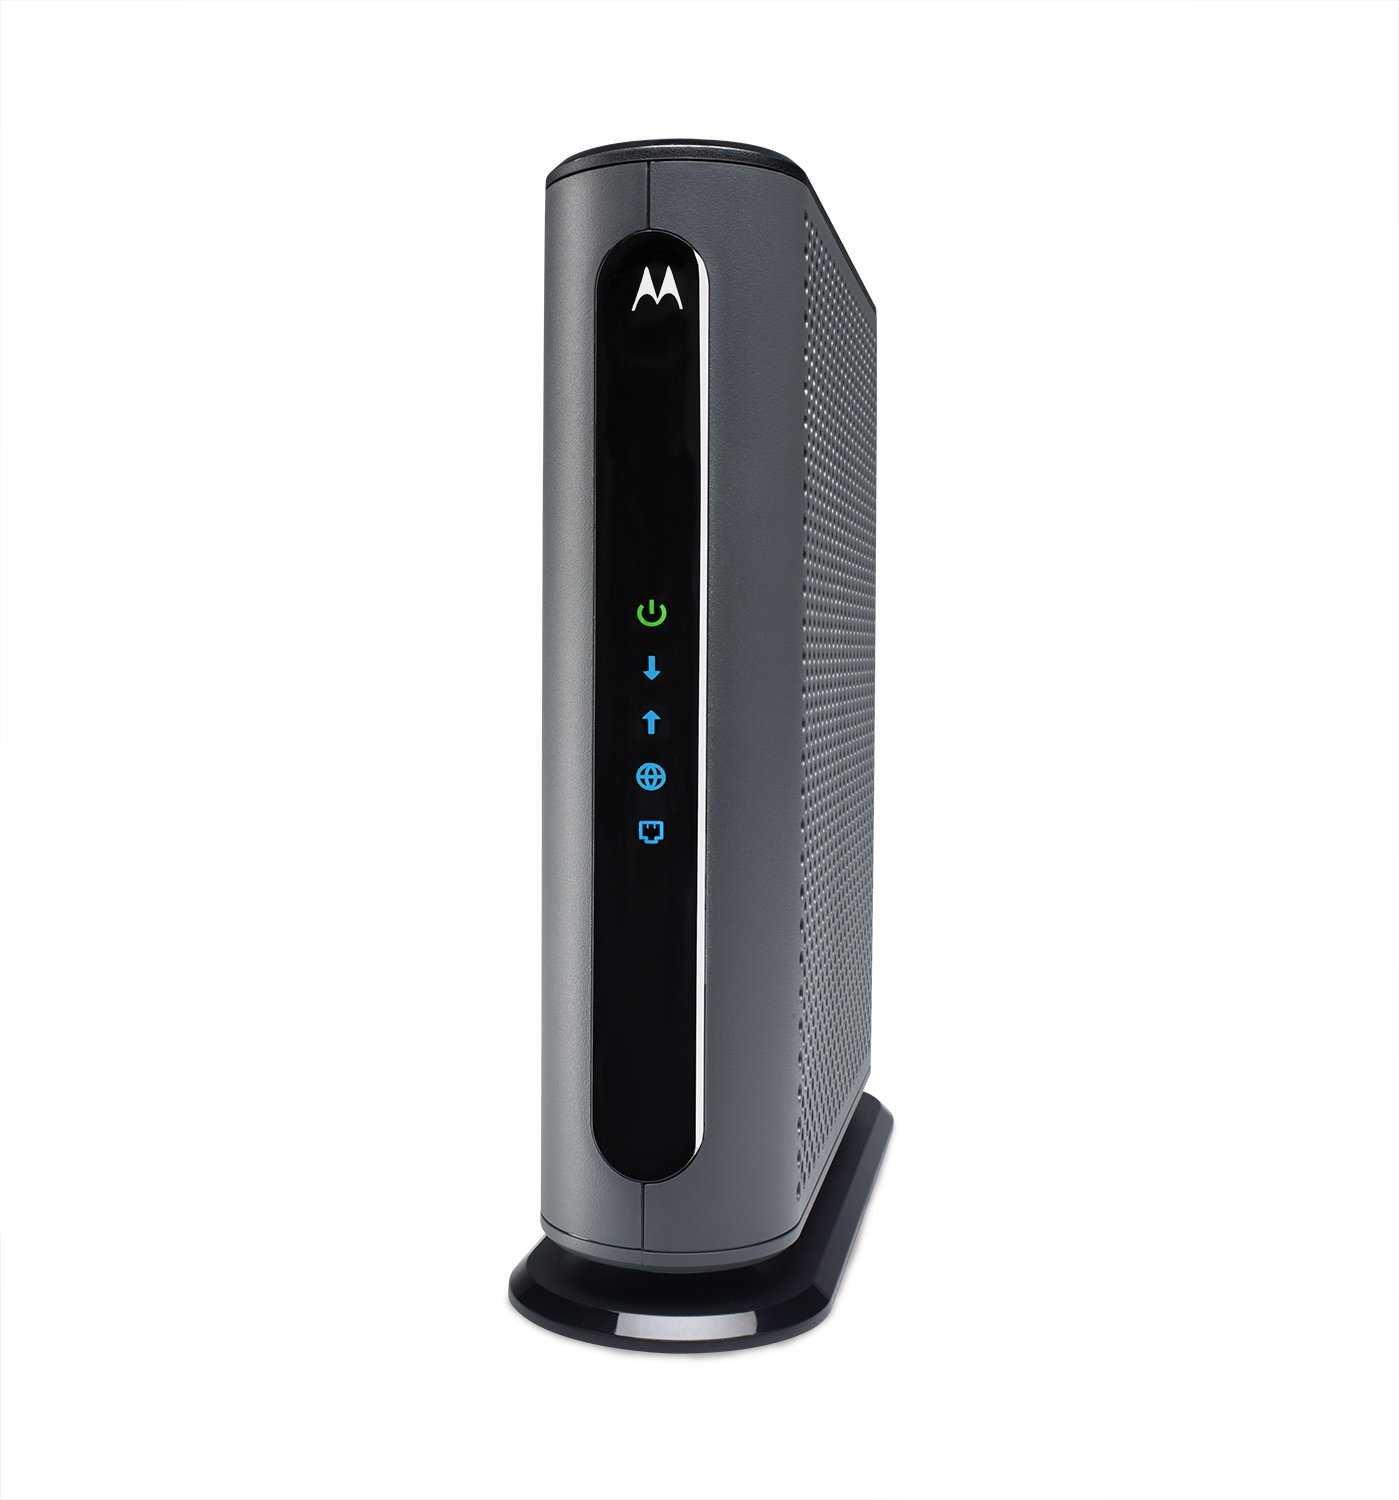 Motorola Ultra Fast DOCSIS 3.1 Cable Modem, Model MB8600, plus 32x8 DOCSIS 3.0, Certified by Comcast XFINITY and Cox Communications by Motorola